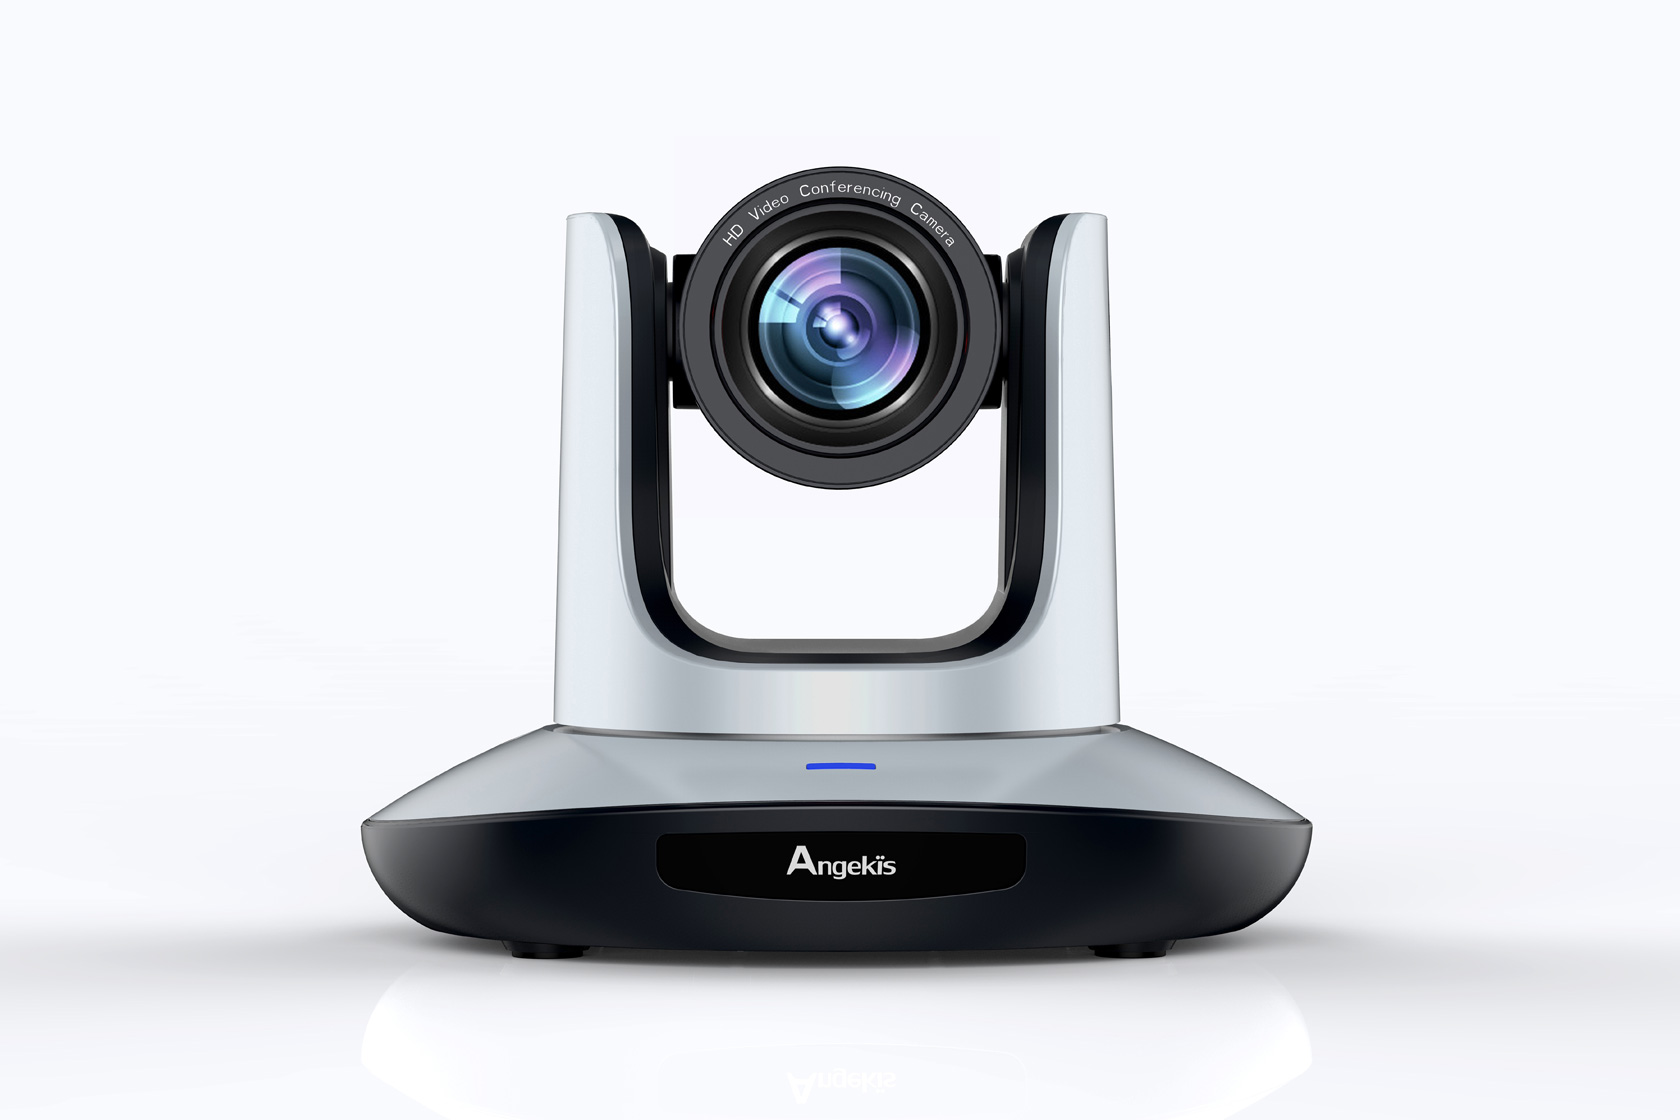 Angekis, Saber SDI, Video Conference PTZ Camera, 12x zoom, SDI/DVI (HDMI) video output at 60 fps. HFOV 72.5